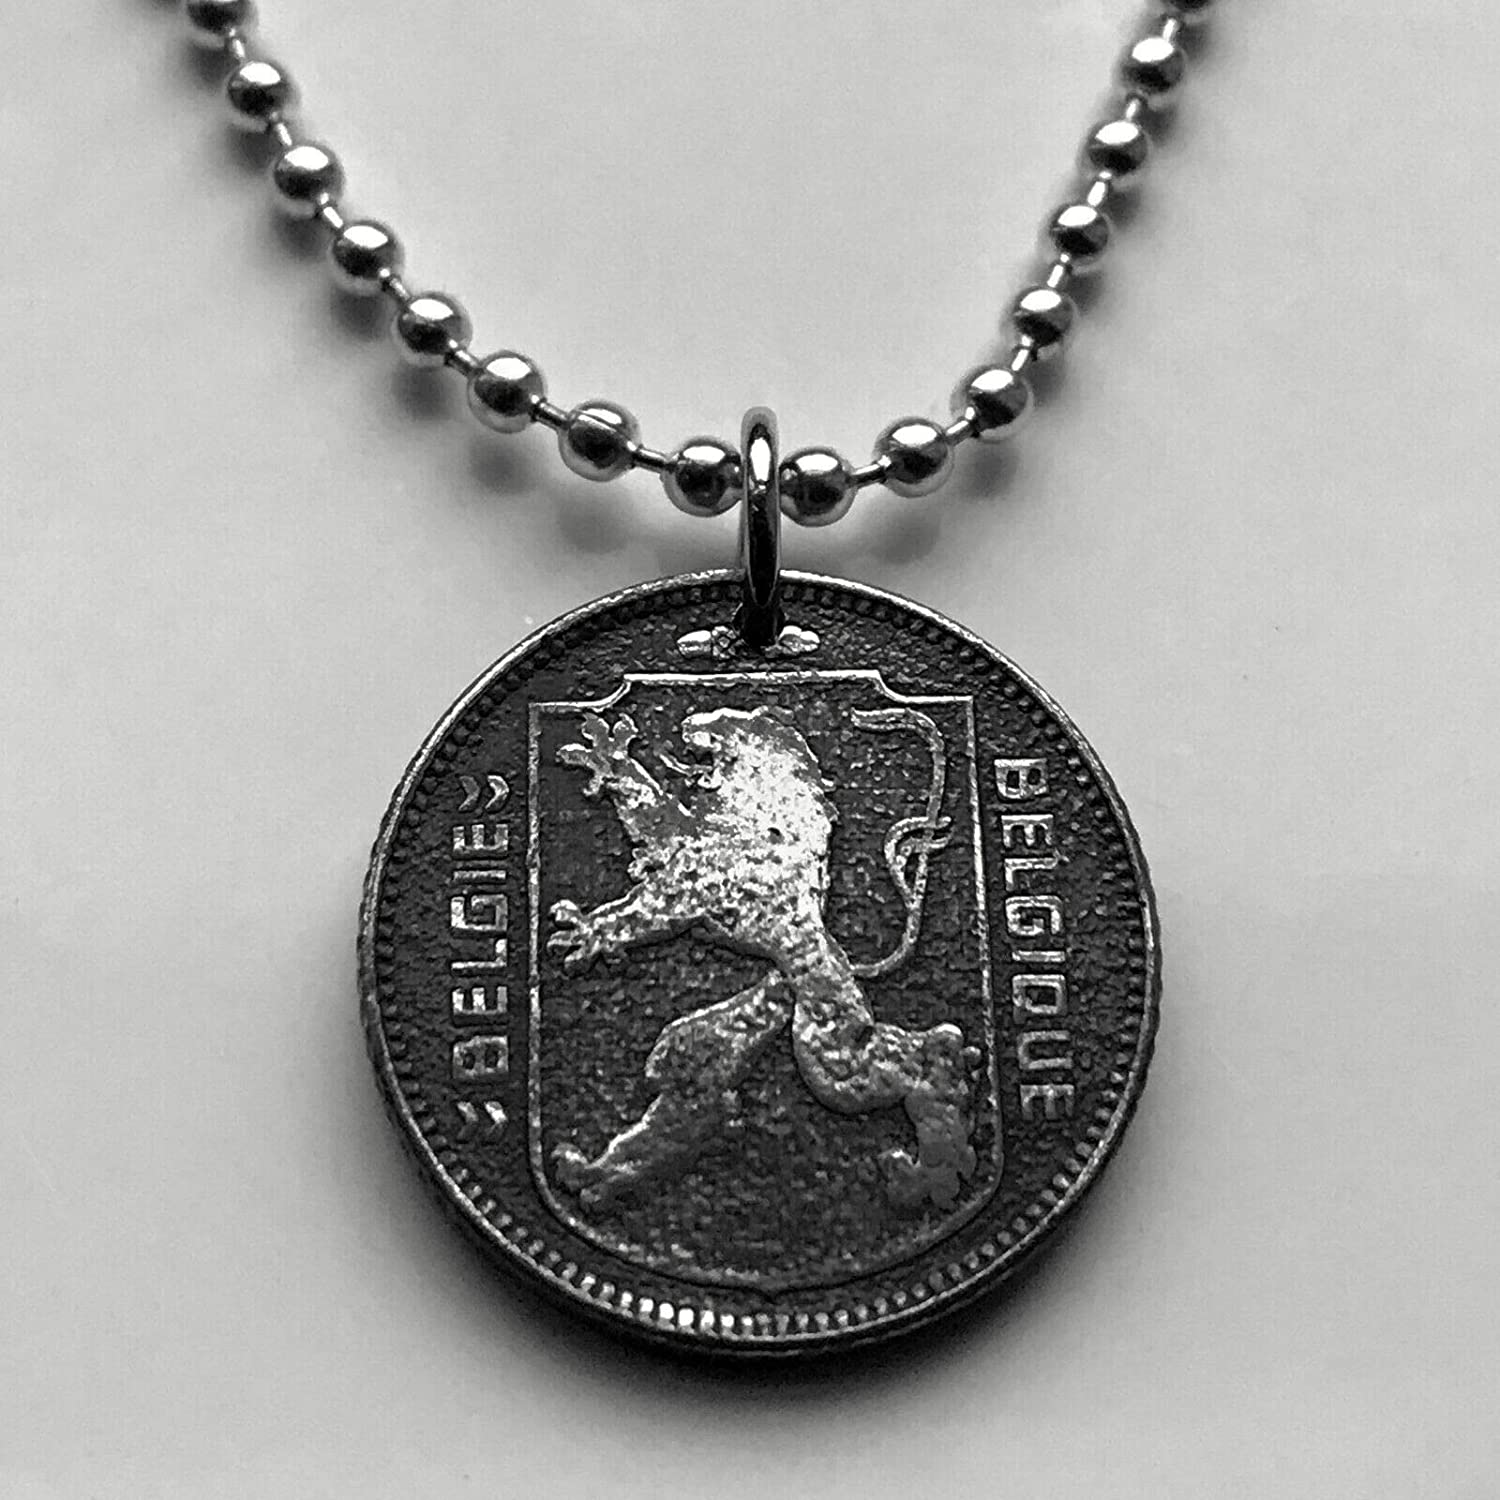 44th Anniversary art.473. 44th Birthday Gift Vintage Belgium Coin Pendant made from Genuine 1973 1 franc Coin